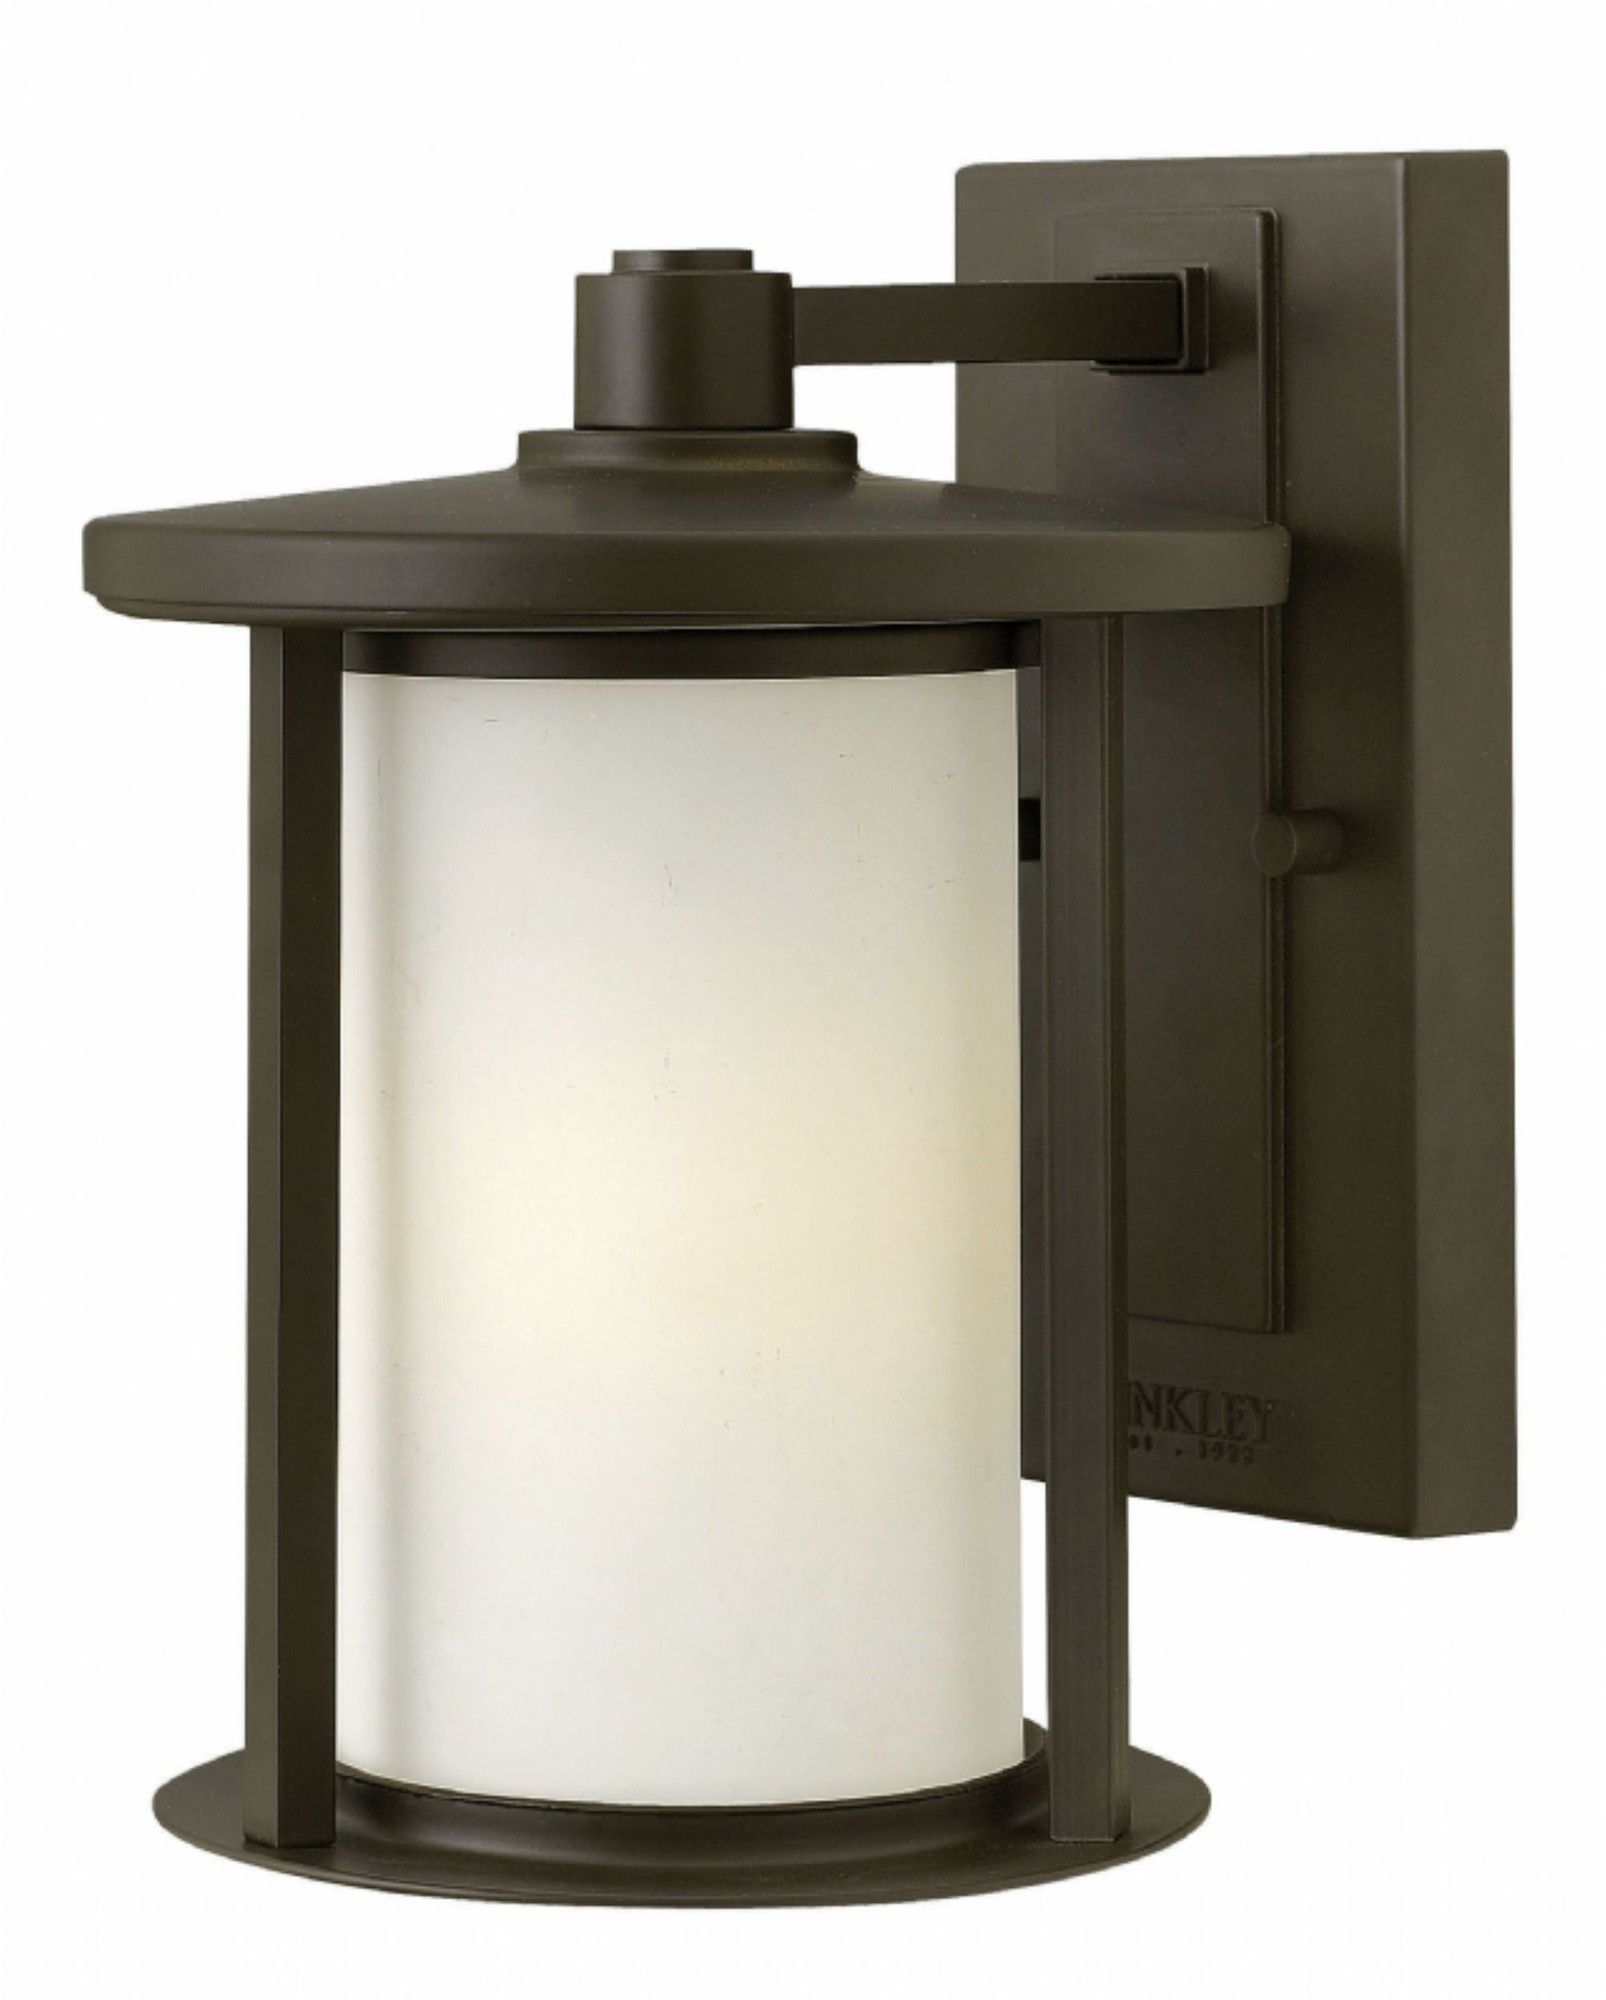 Hudson led outdoor wall lantern outdoor wall lantern outdoor